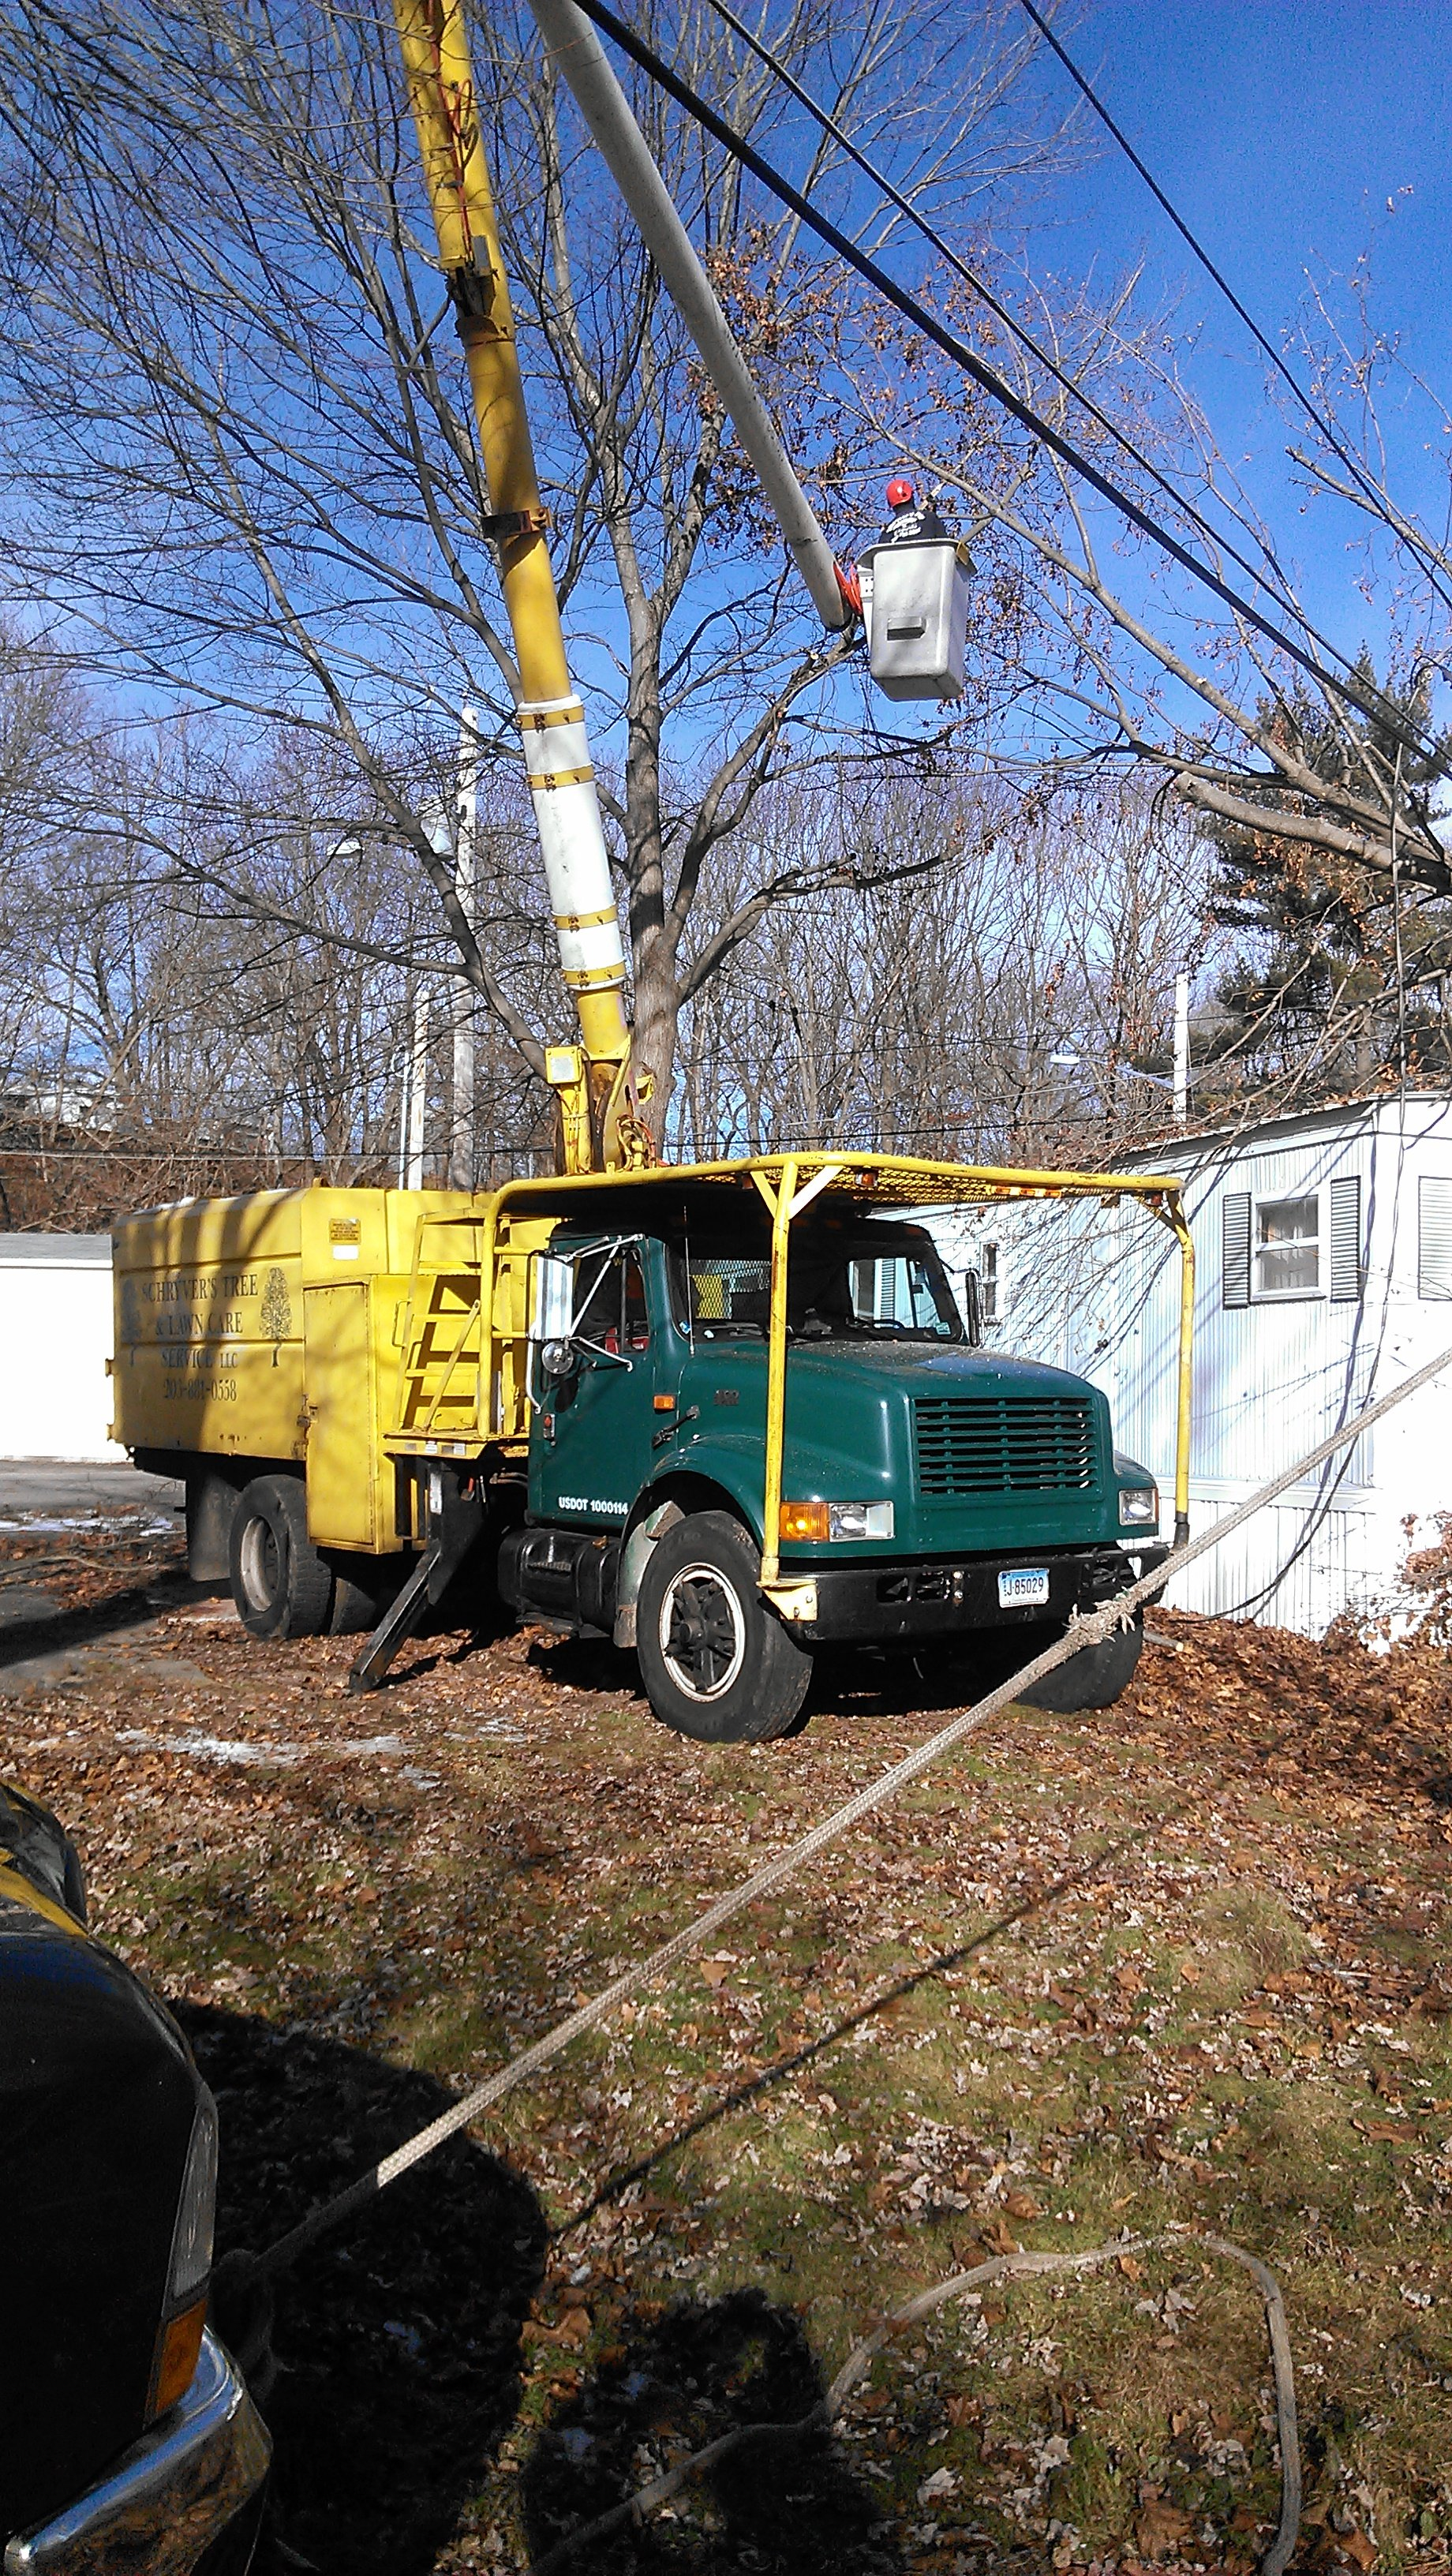 Team member of Schryver's Tree & Landscape LLC providing tree services in Seymour, CT